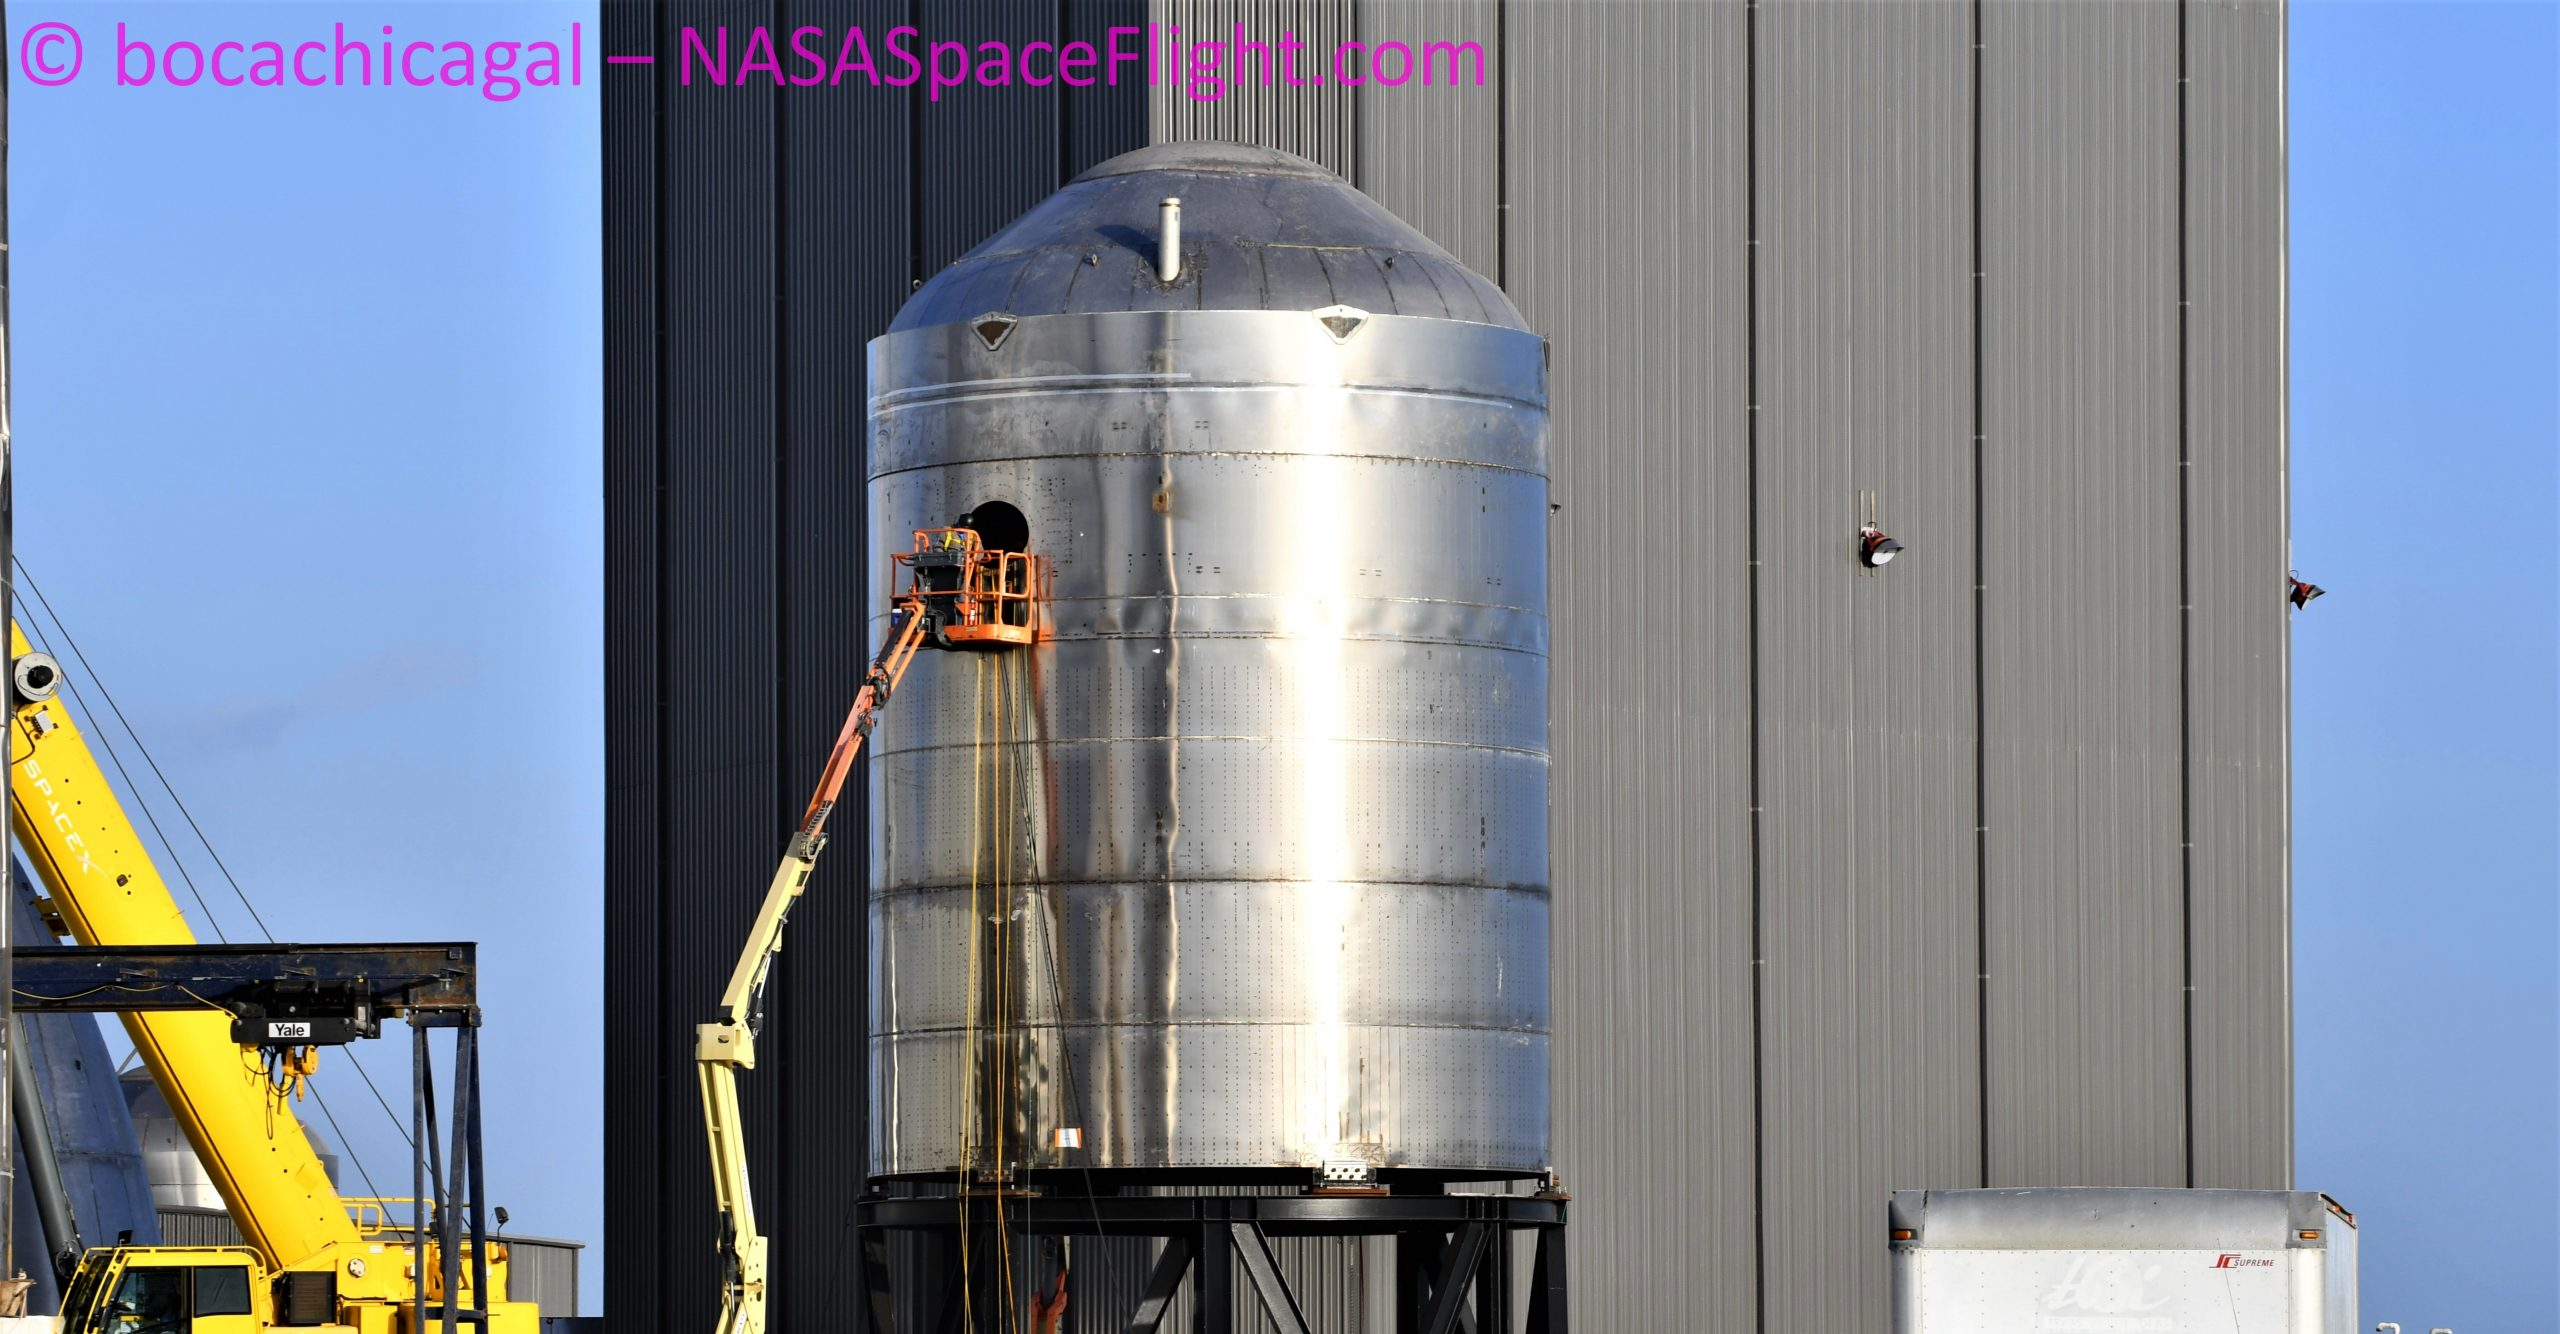 Starship Boca Chica 090420 (NASASpaceflight – bocachicagal) SN7.1 1 crop